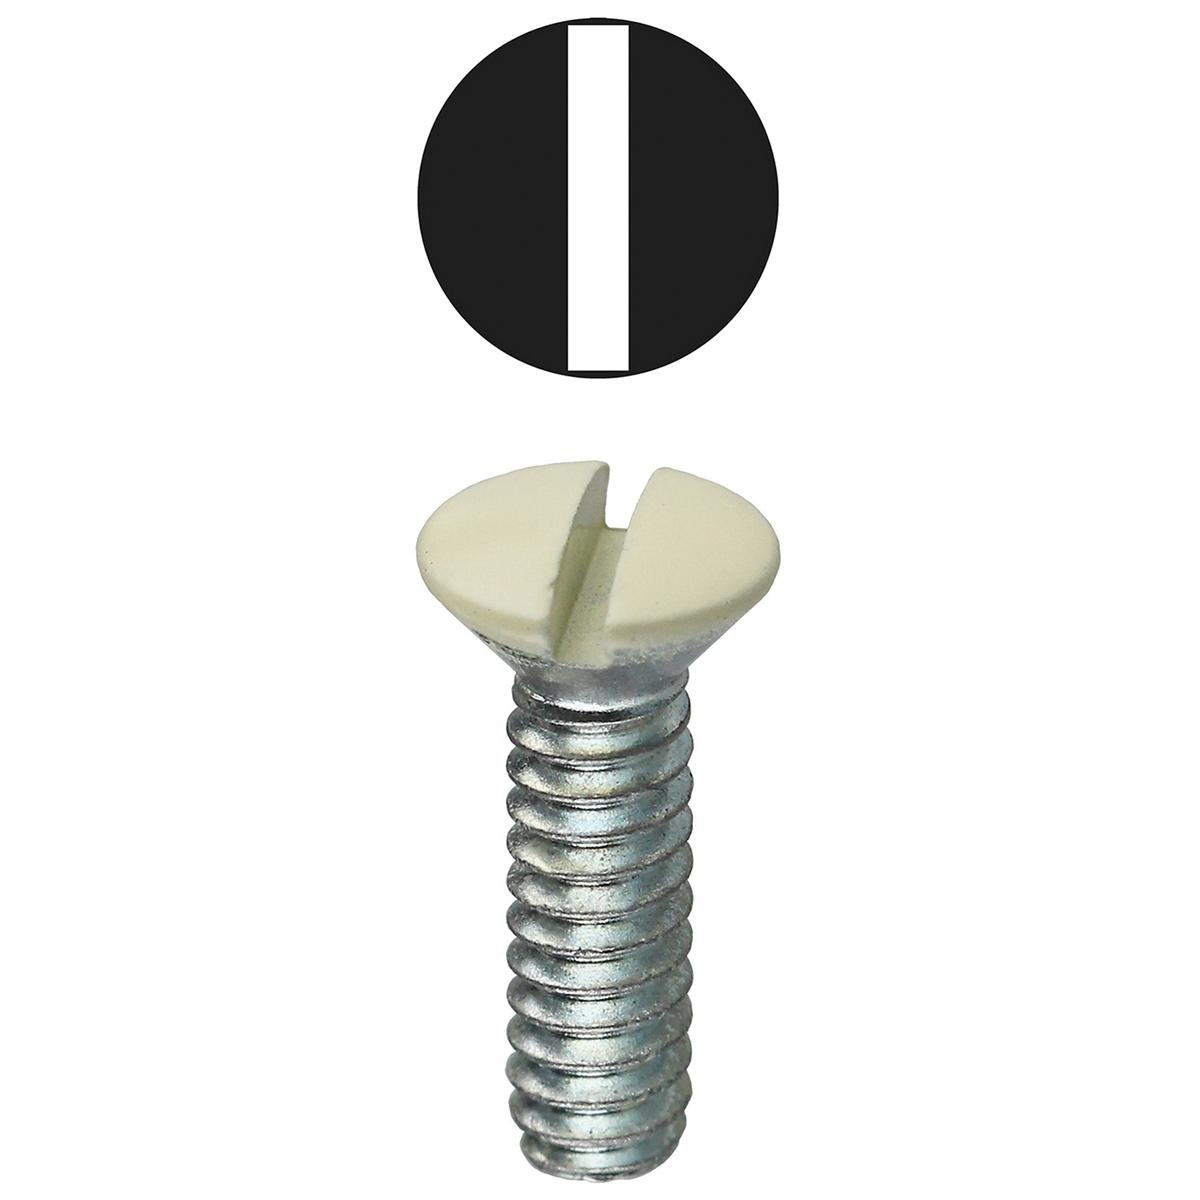 100 Count Asstd # 6 Oval Head Stainless Steel Screws